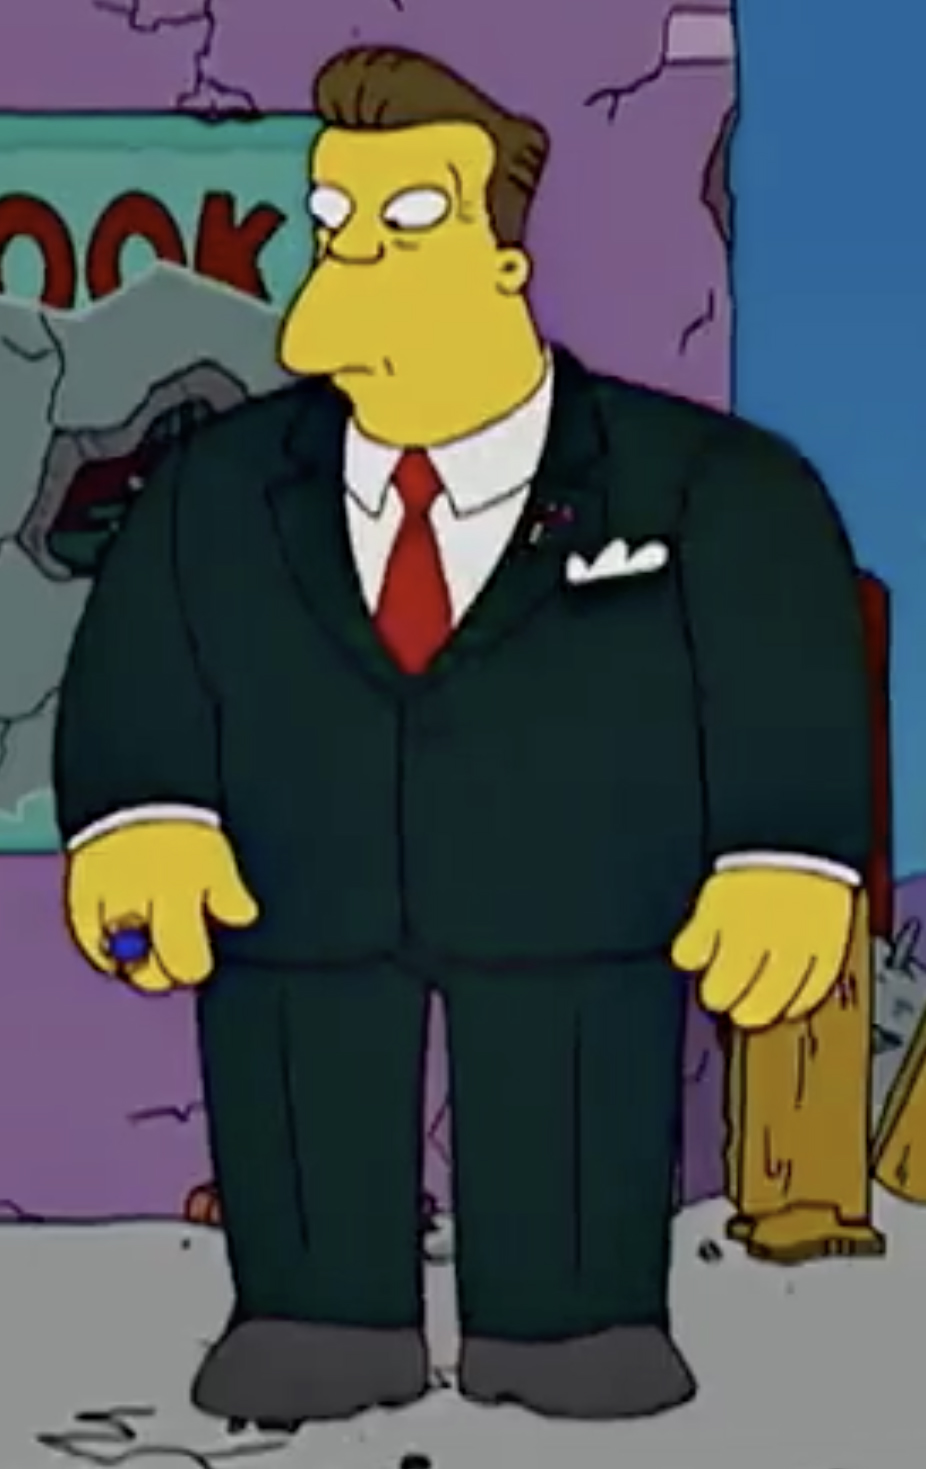 http://images.wikia.com/simpsons/images/3/37/Arnold_Schwarzenegger.jpg?width =350